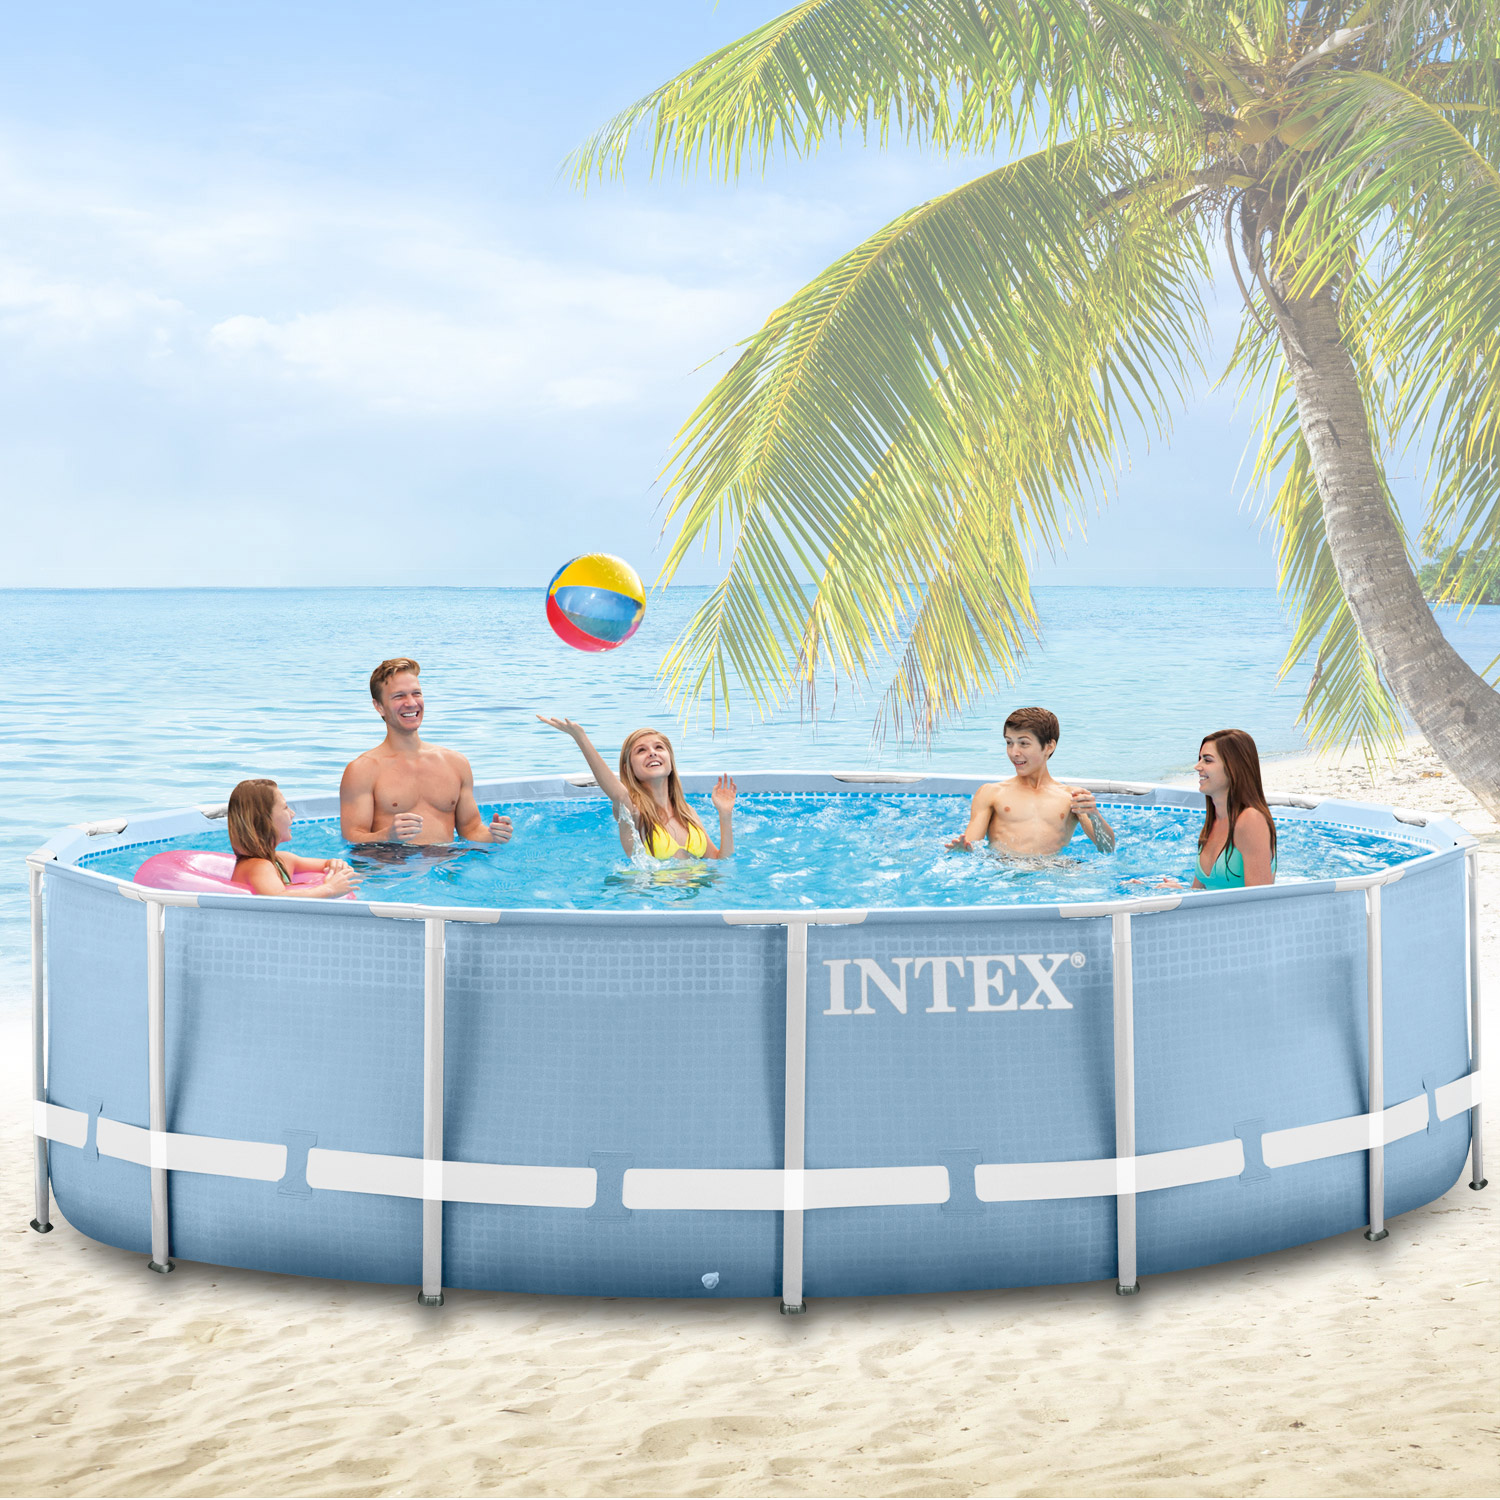 Intex 366x91 schwimmbecken swimming pool schwimmbad frame for Stahlwand swimming pool